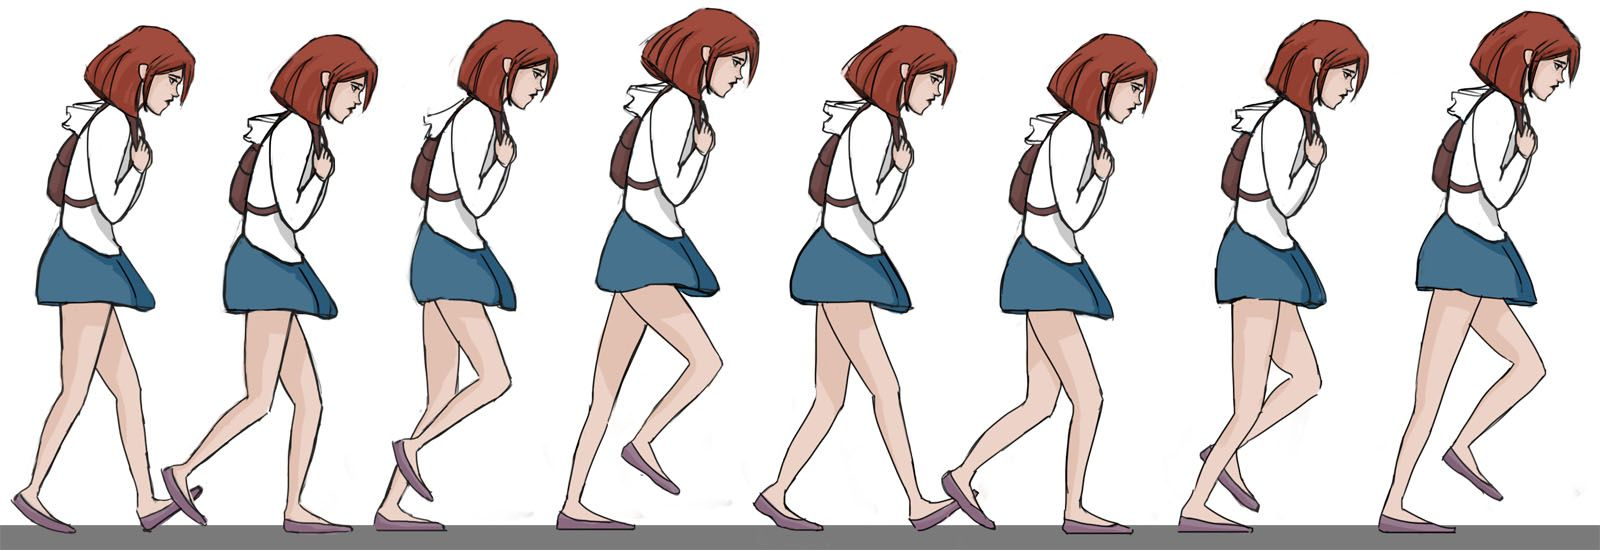 2d Animation Character Design Tutorial : Best walk cycle animation videos and keyframe